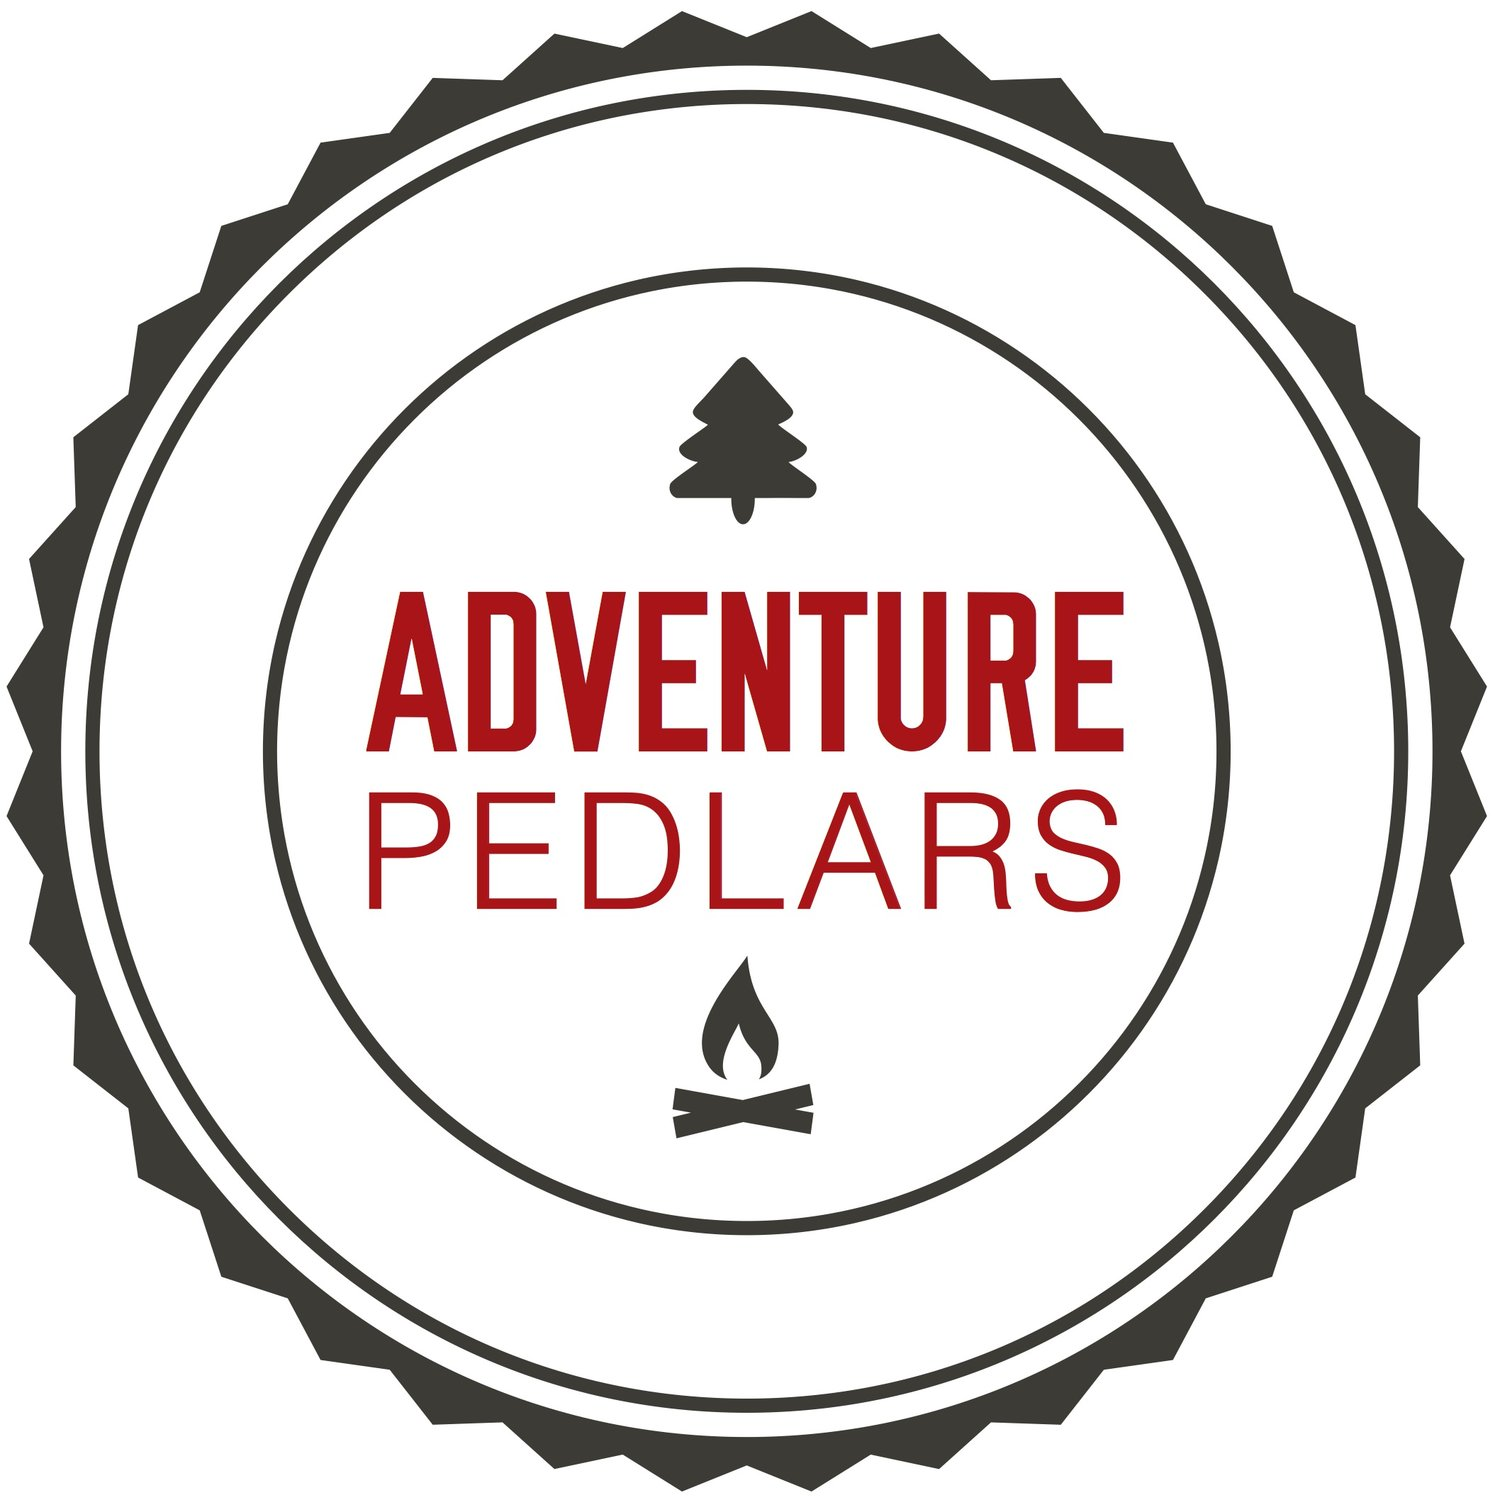 Adventure Pedlars